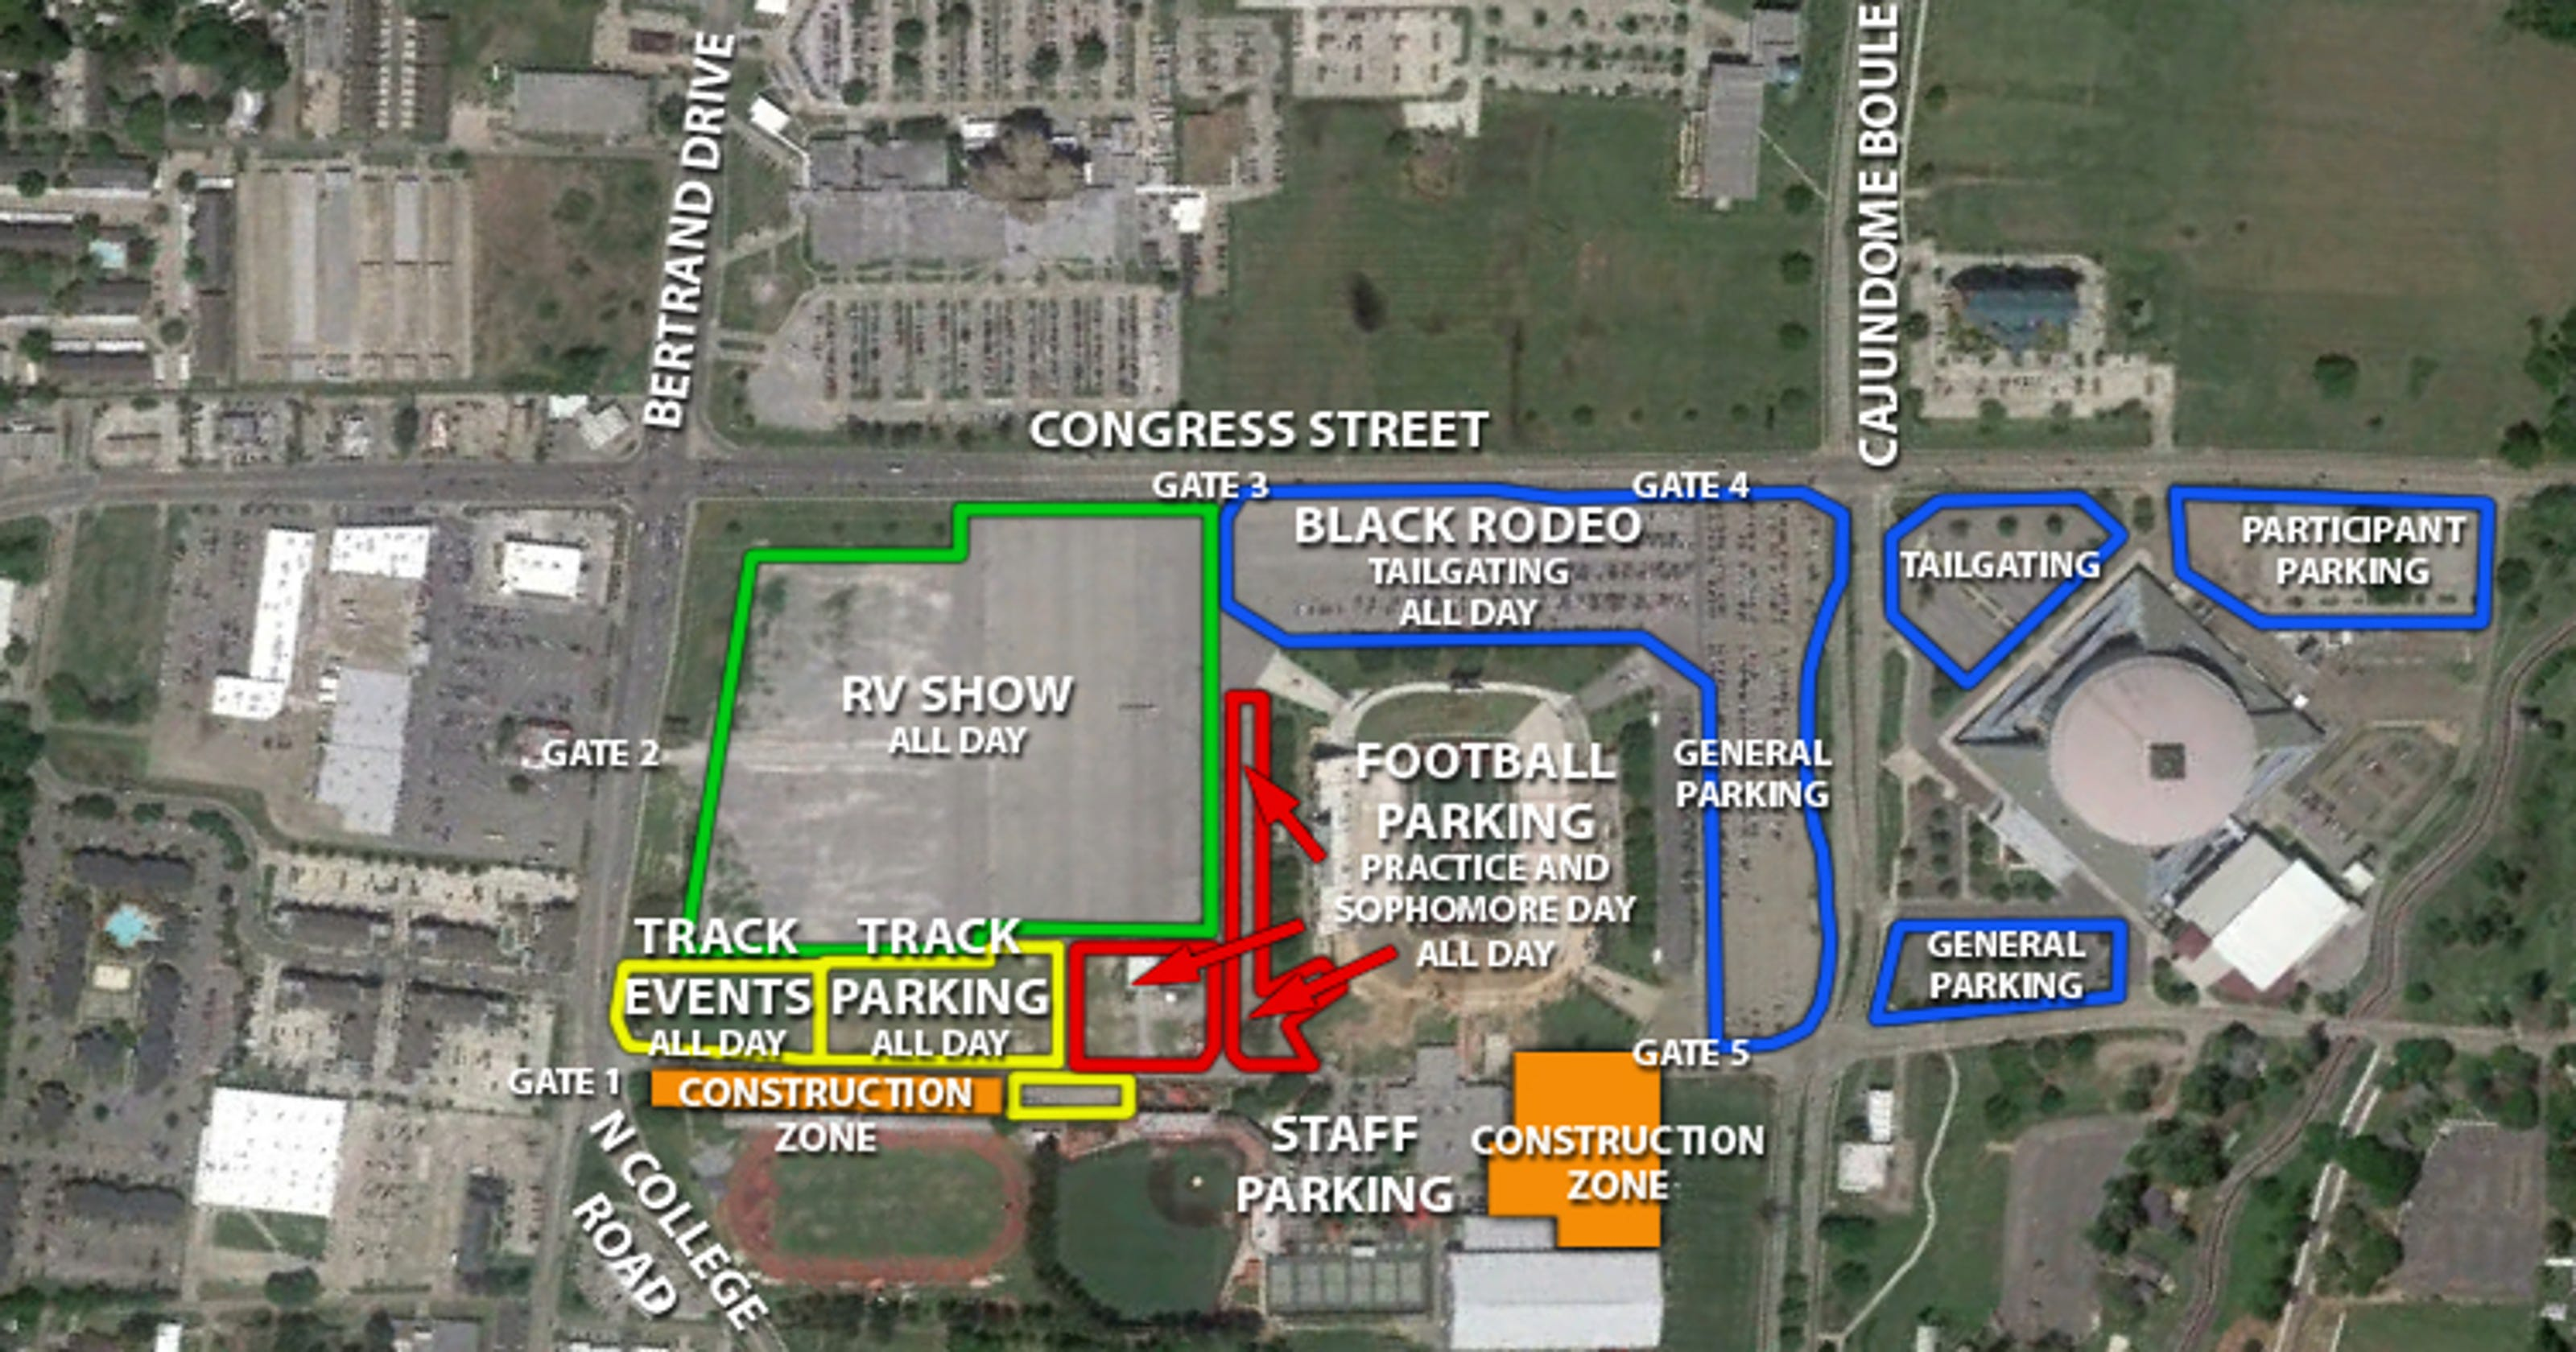 University Of Louisiana At Lafayette Campus Map.Ul Announces Parking Changes For Cajun Field Weekend Events